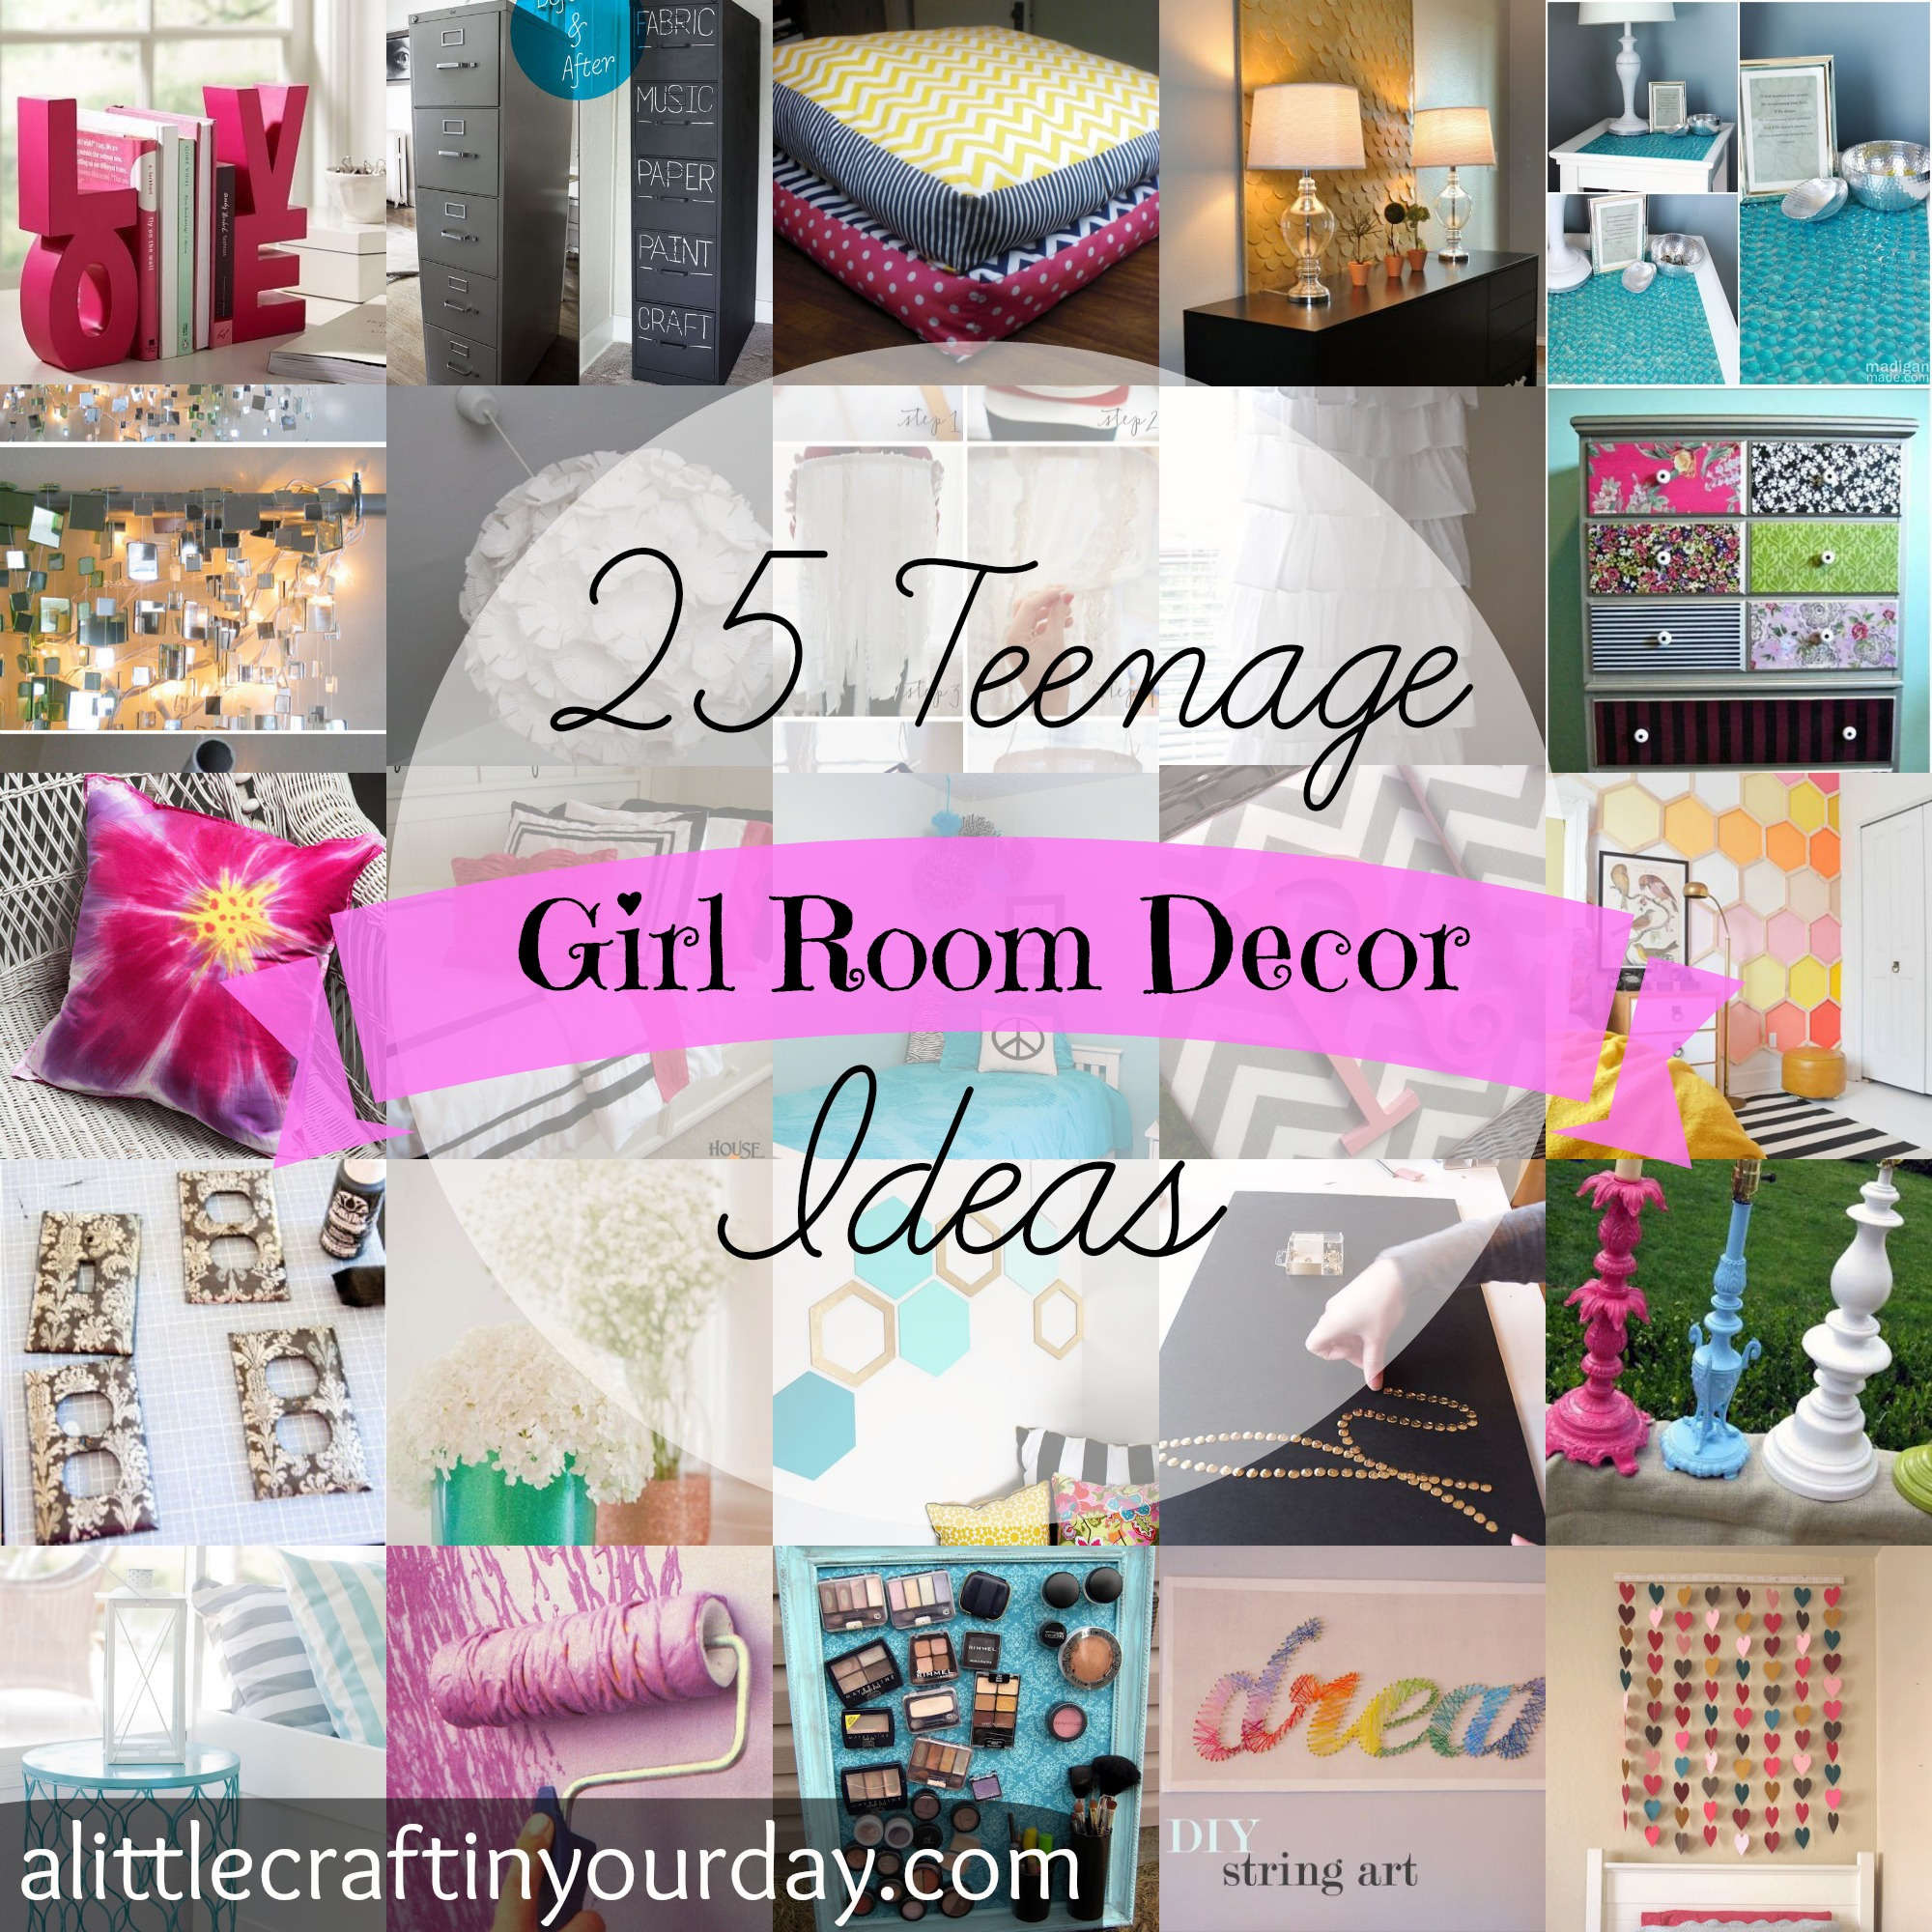 Image Room Decoration 25 Teenage Girl Room Decor Ideas A Little Craft In Your Day